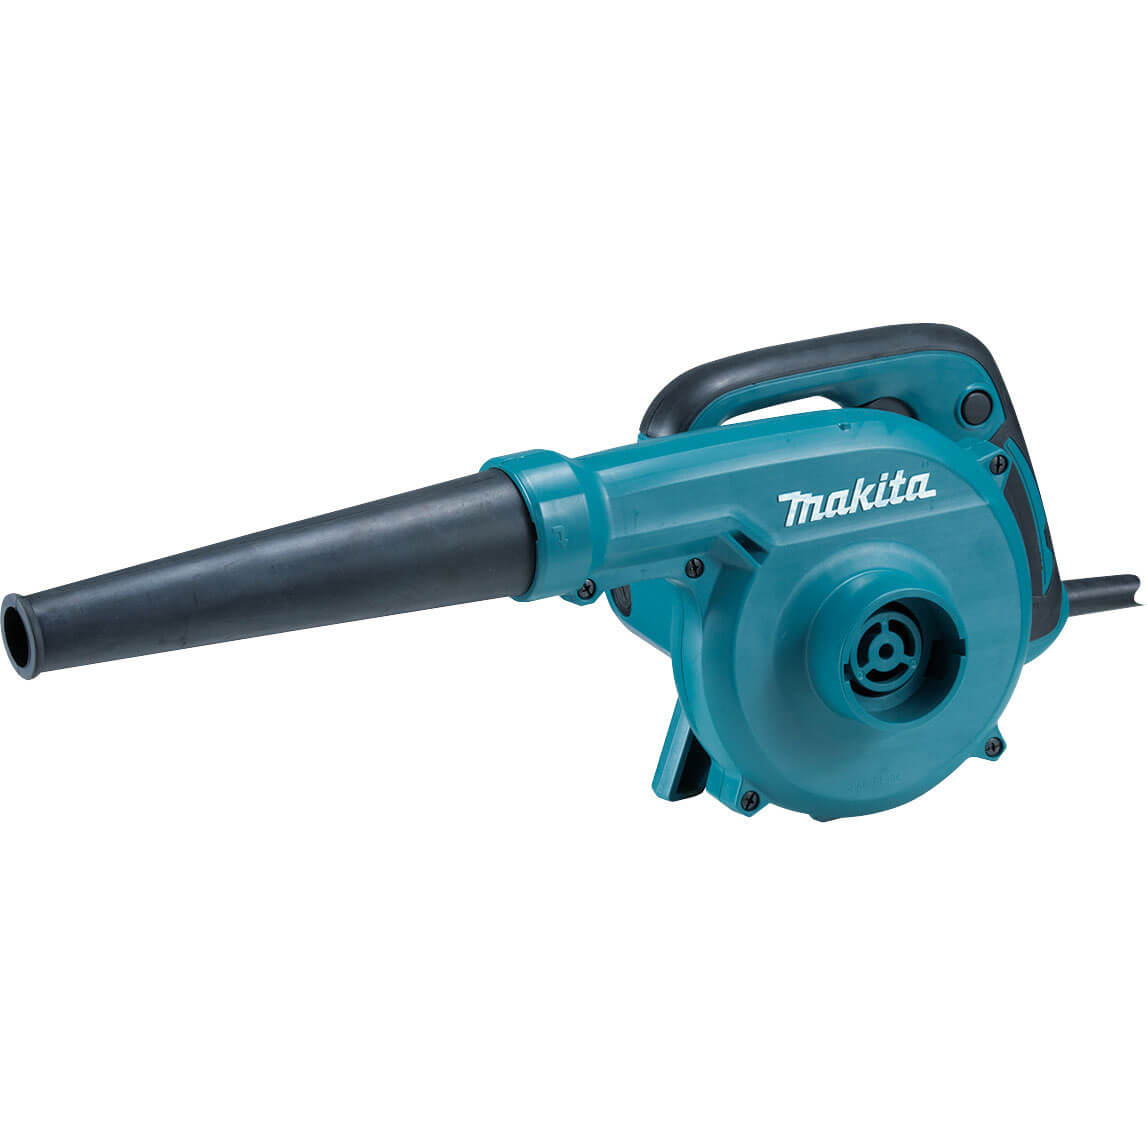 Makita UB1103 Electric Variable Speed Vac Blower 600w 110v